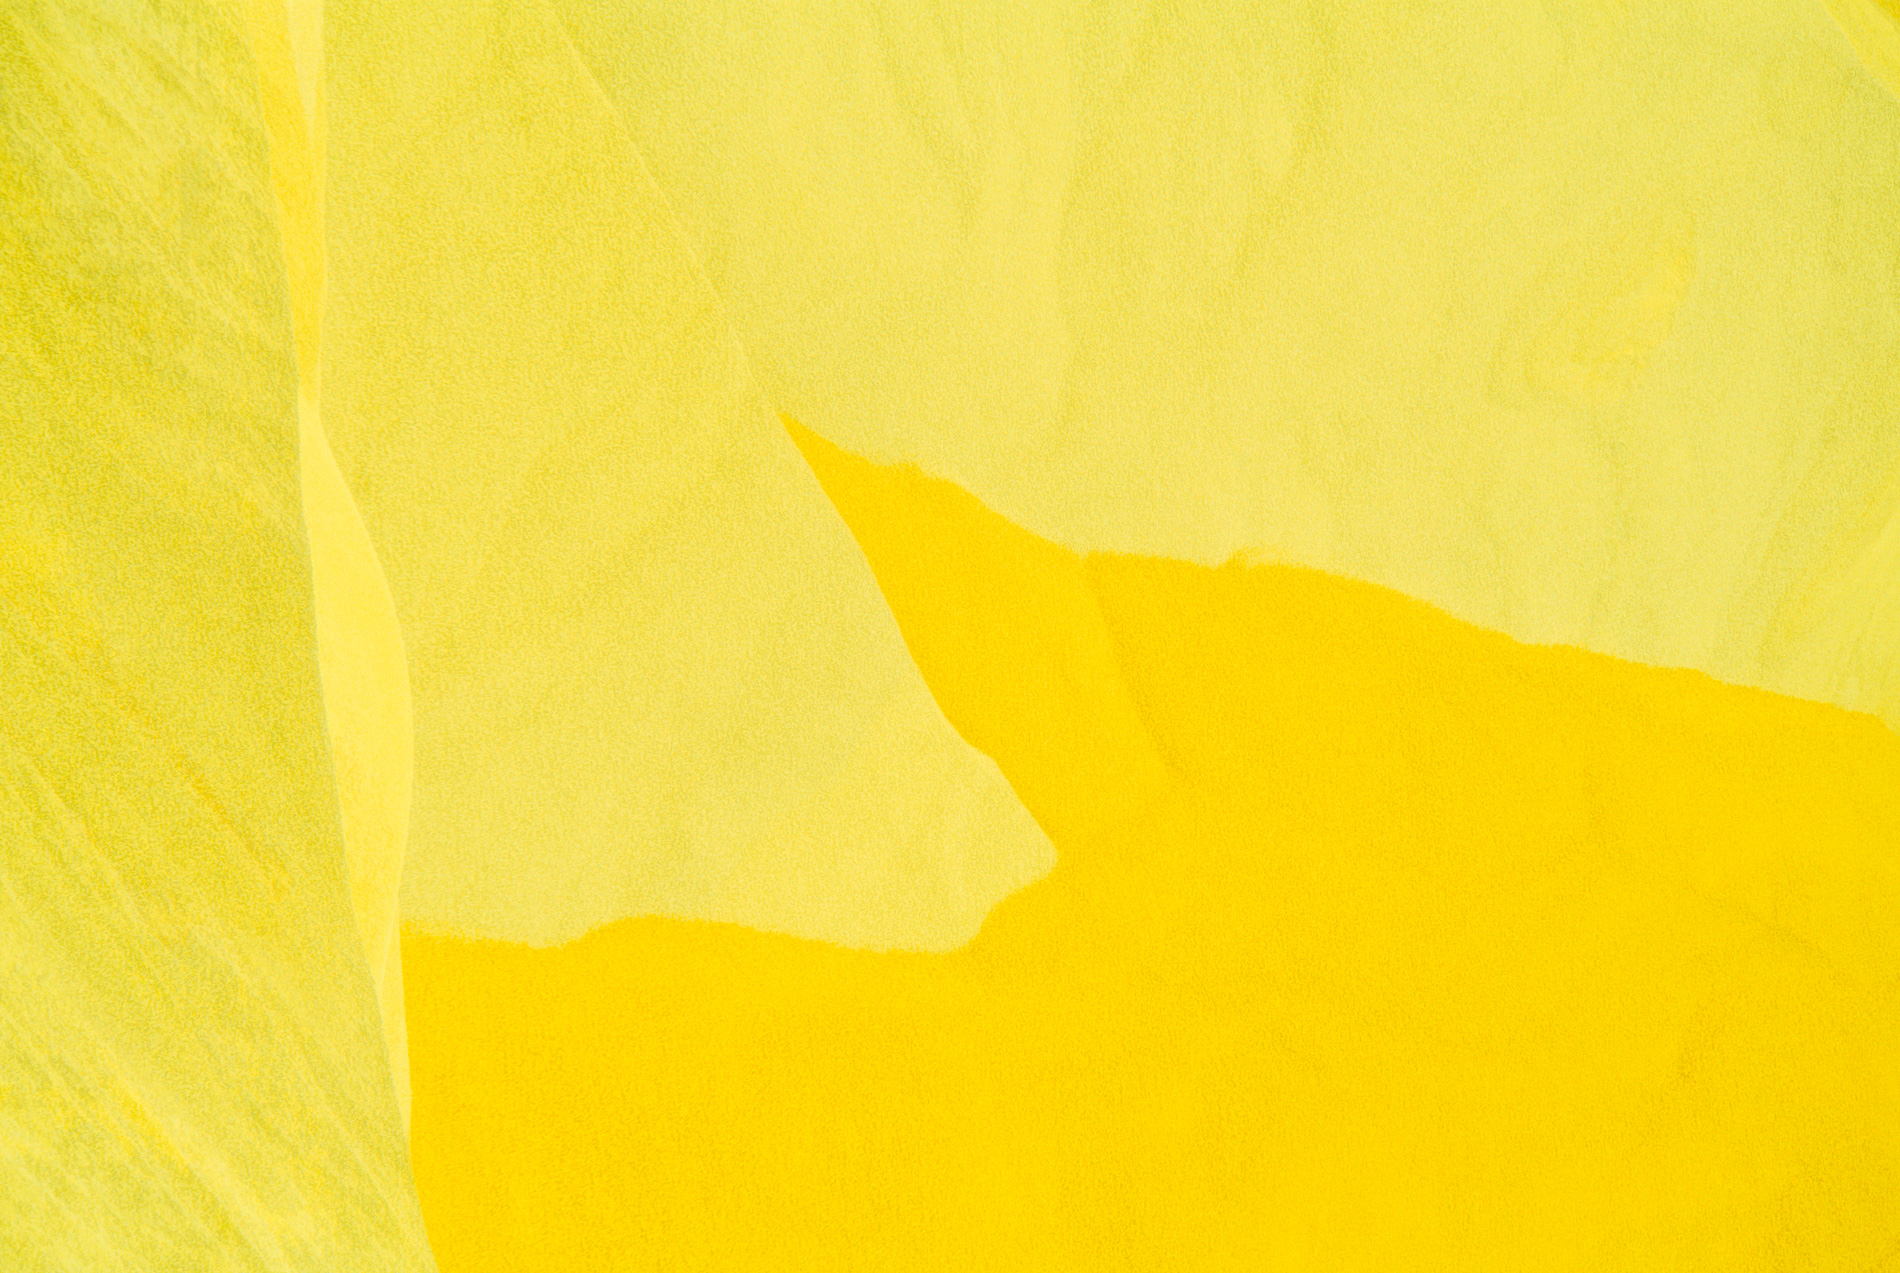 abstract, color, yellow, graphic, photographic image